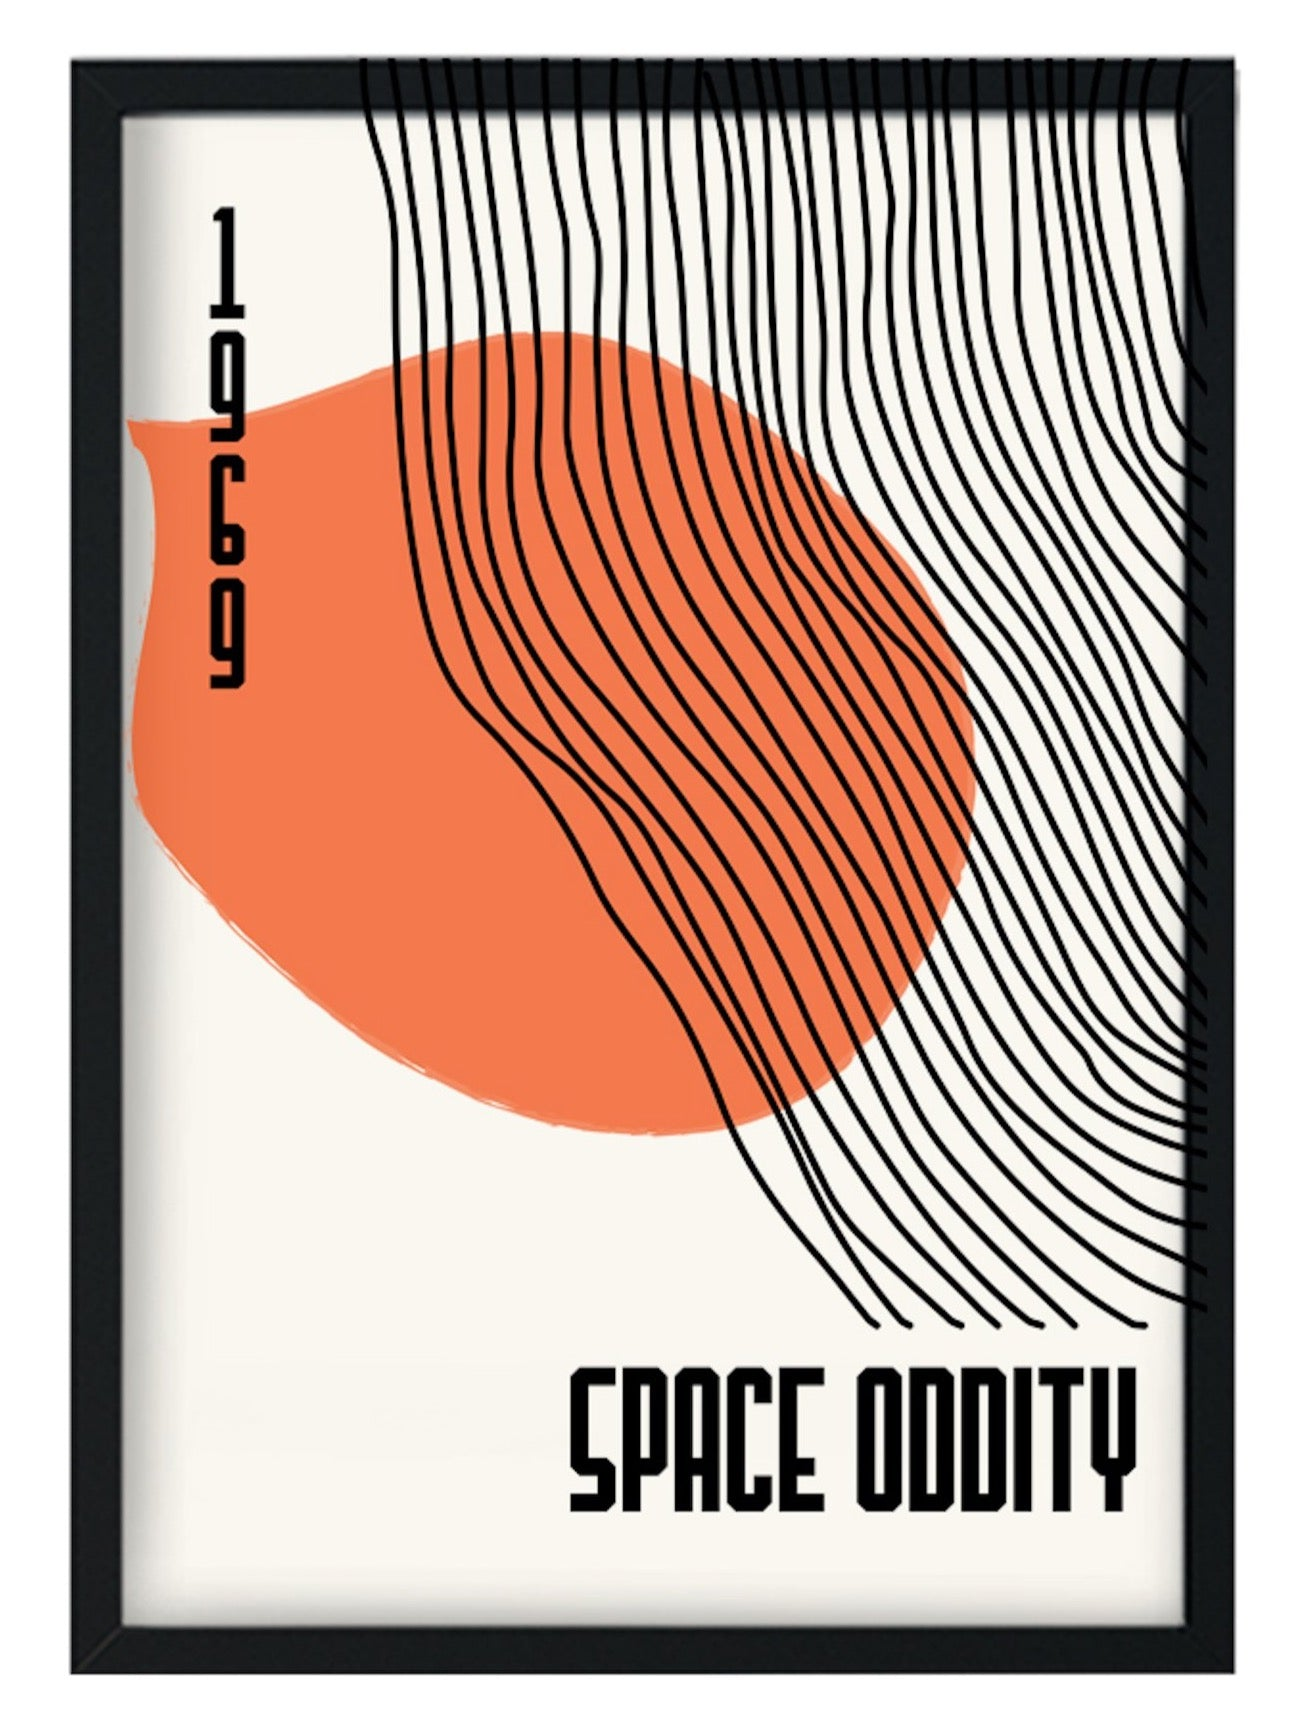 Space oddity David Bowie inspired  retro A3 Art Print